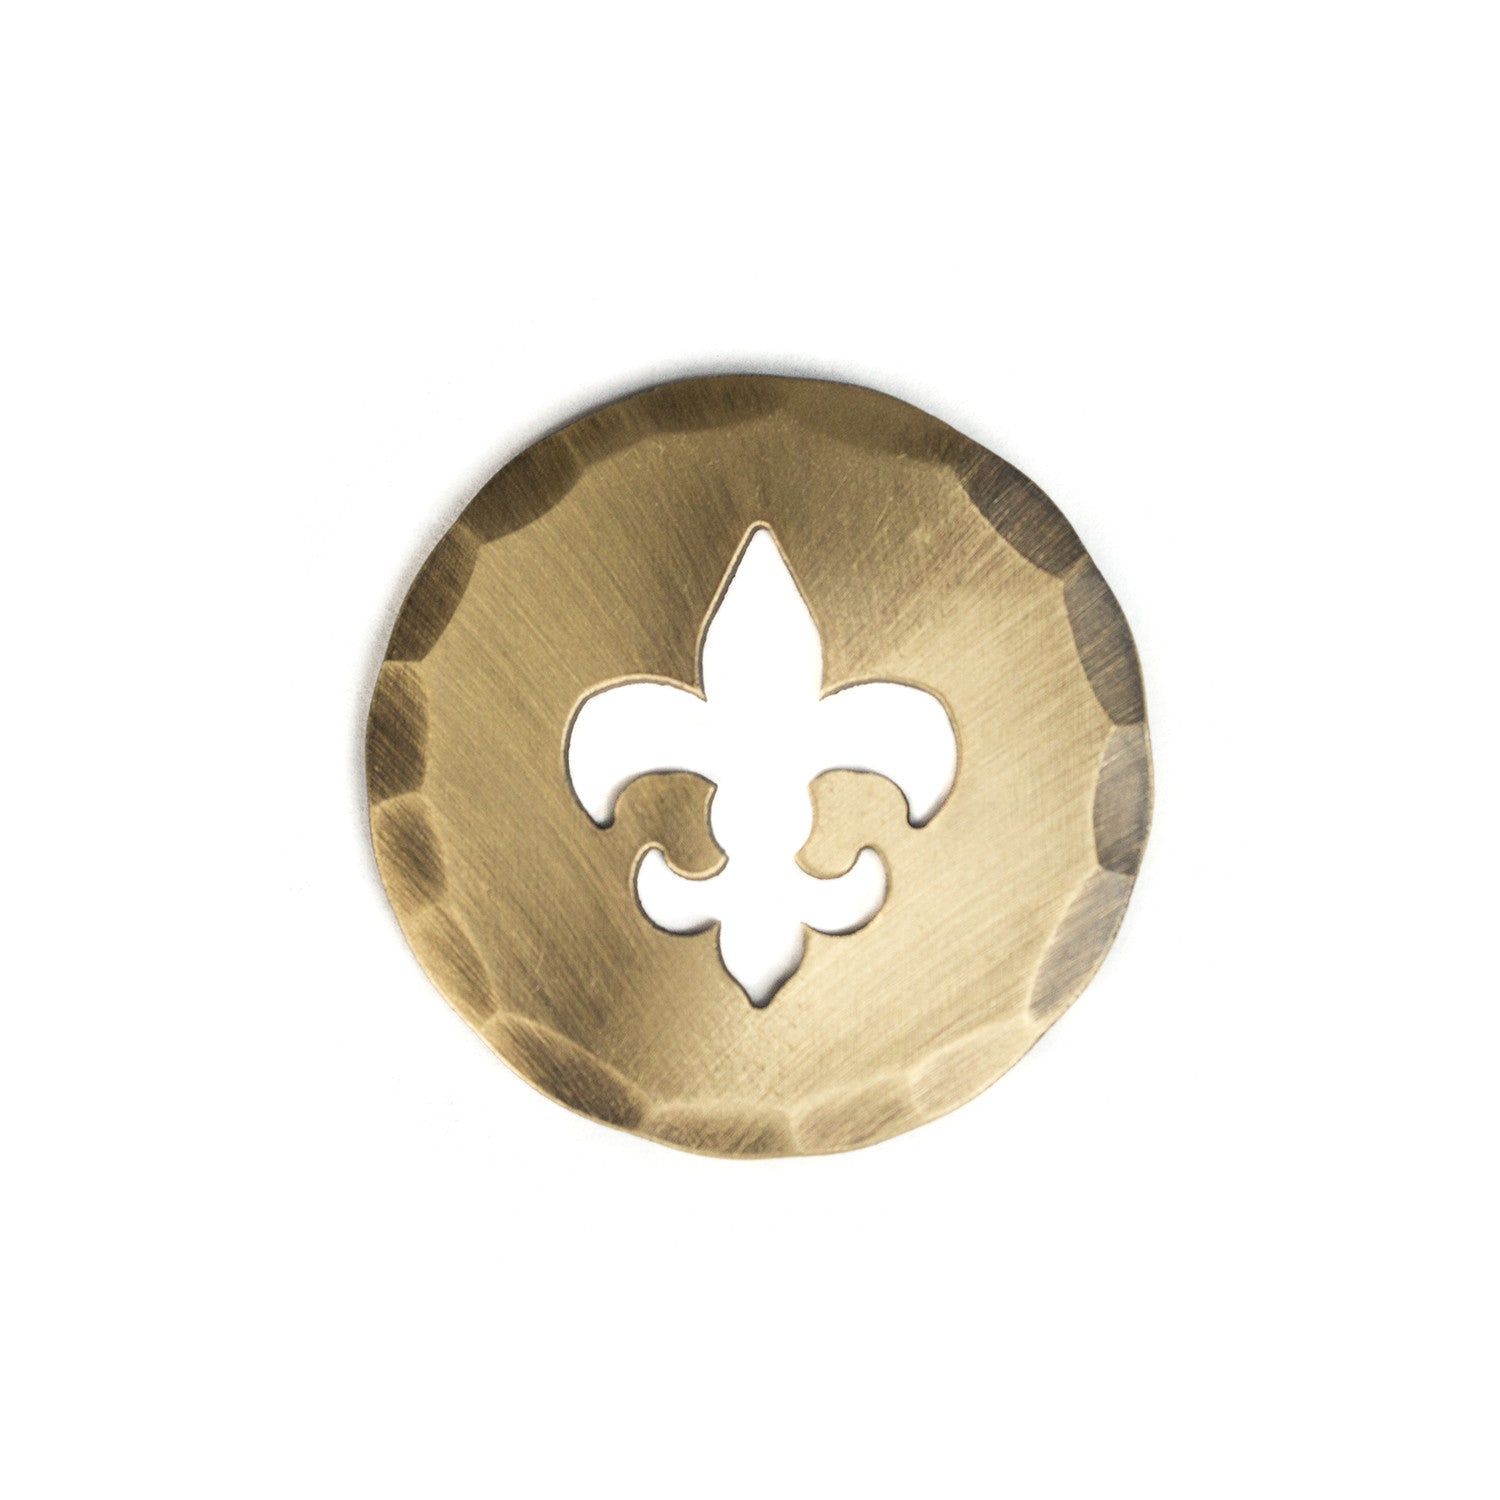 Fleur De Lis Cut-Out Ball Mark | Hand Forged® | Made in the USA ...